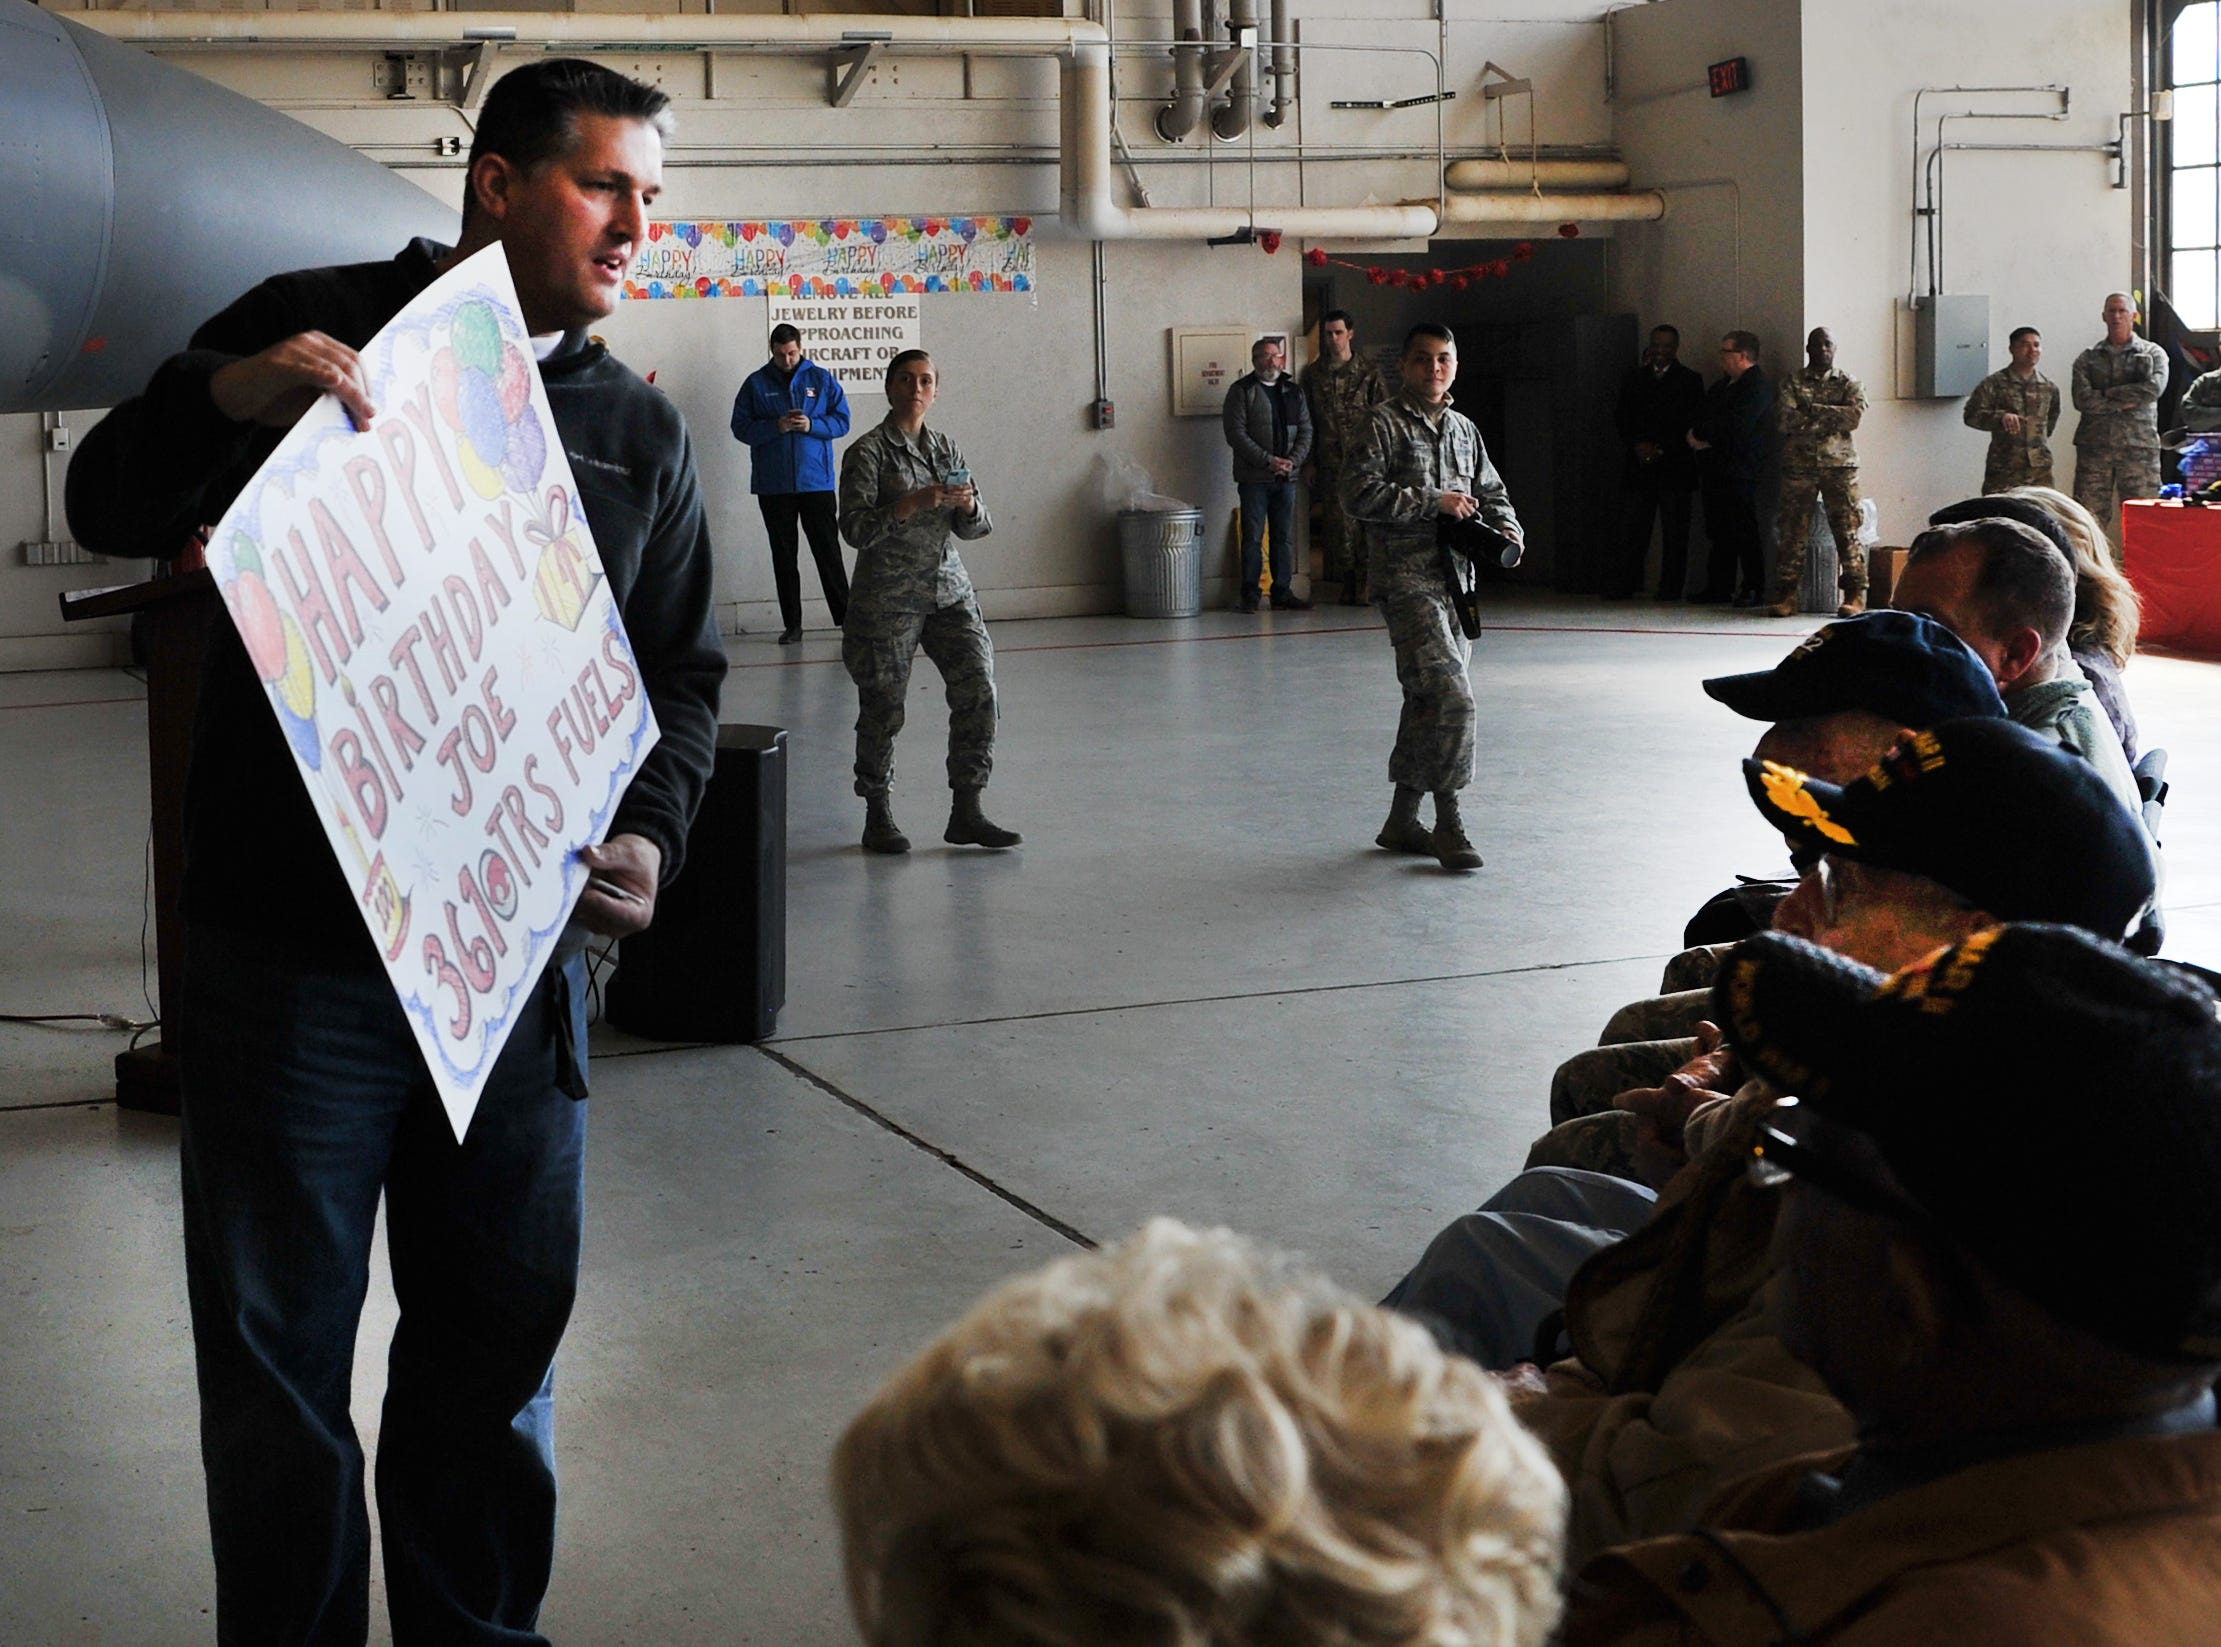 361st Aircraft Fuel Systems, instructor, John Stutts presented a large birthday card signed by the staff to Joe Cuba's birthday celebration held at Sheppard Air Force Base, Thursday afternoon.